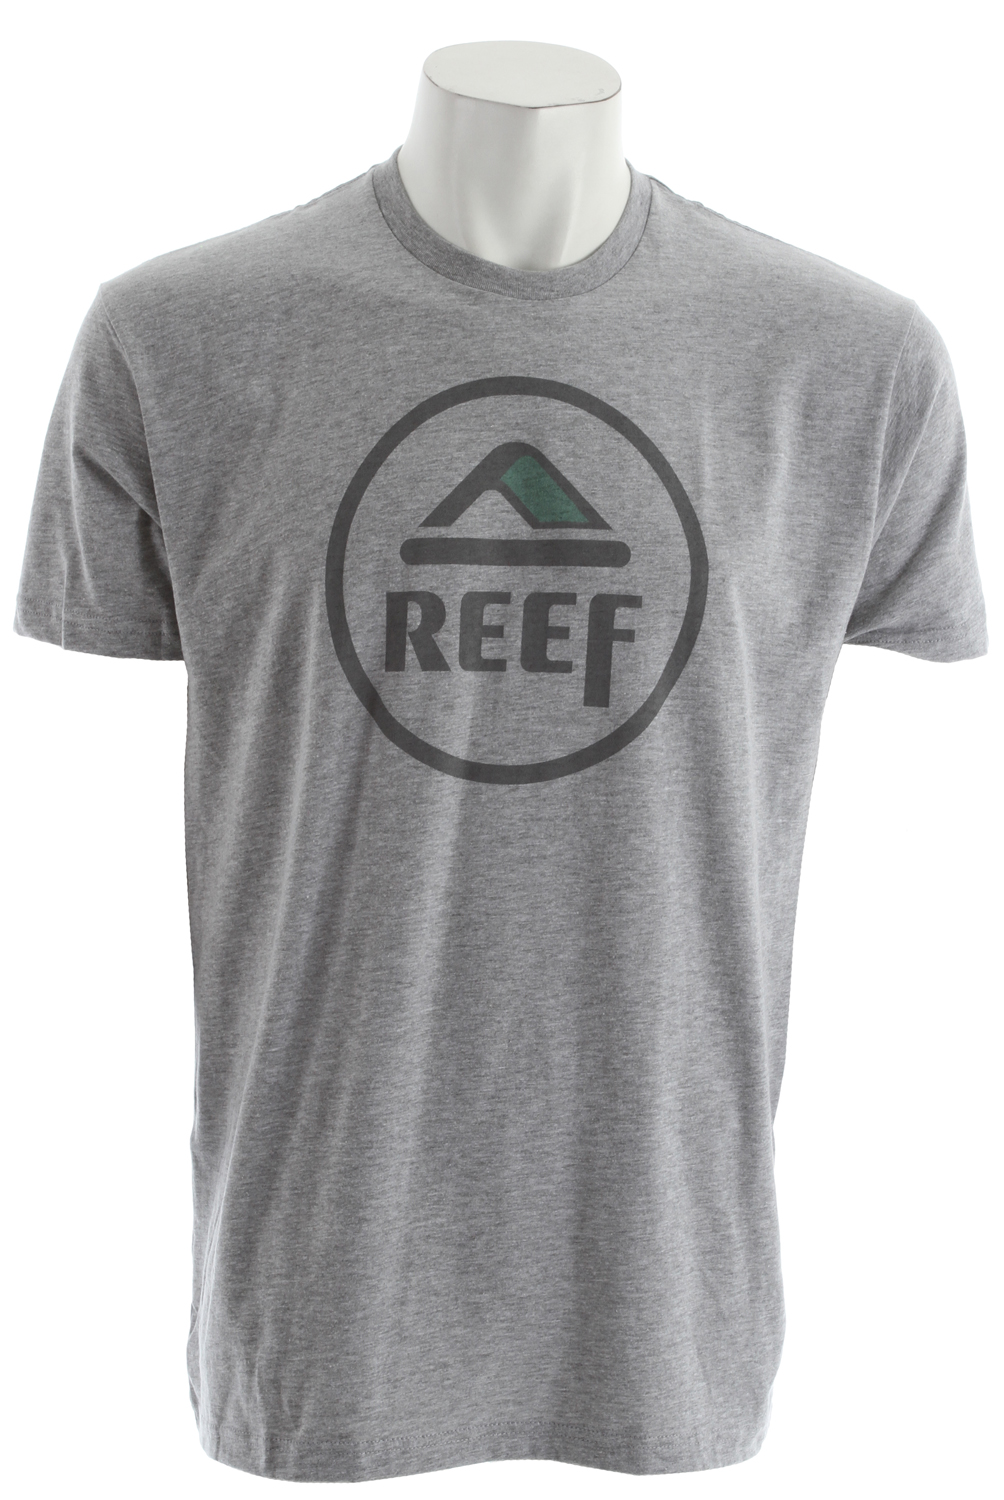 Surf Key Features of the Reef Full Circo T-Shirt: 90/10 Cotton polyester for heather gray colorway 100% Cotton for navy colorway Slim fit Center front screenprint - $23.00